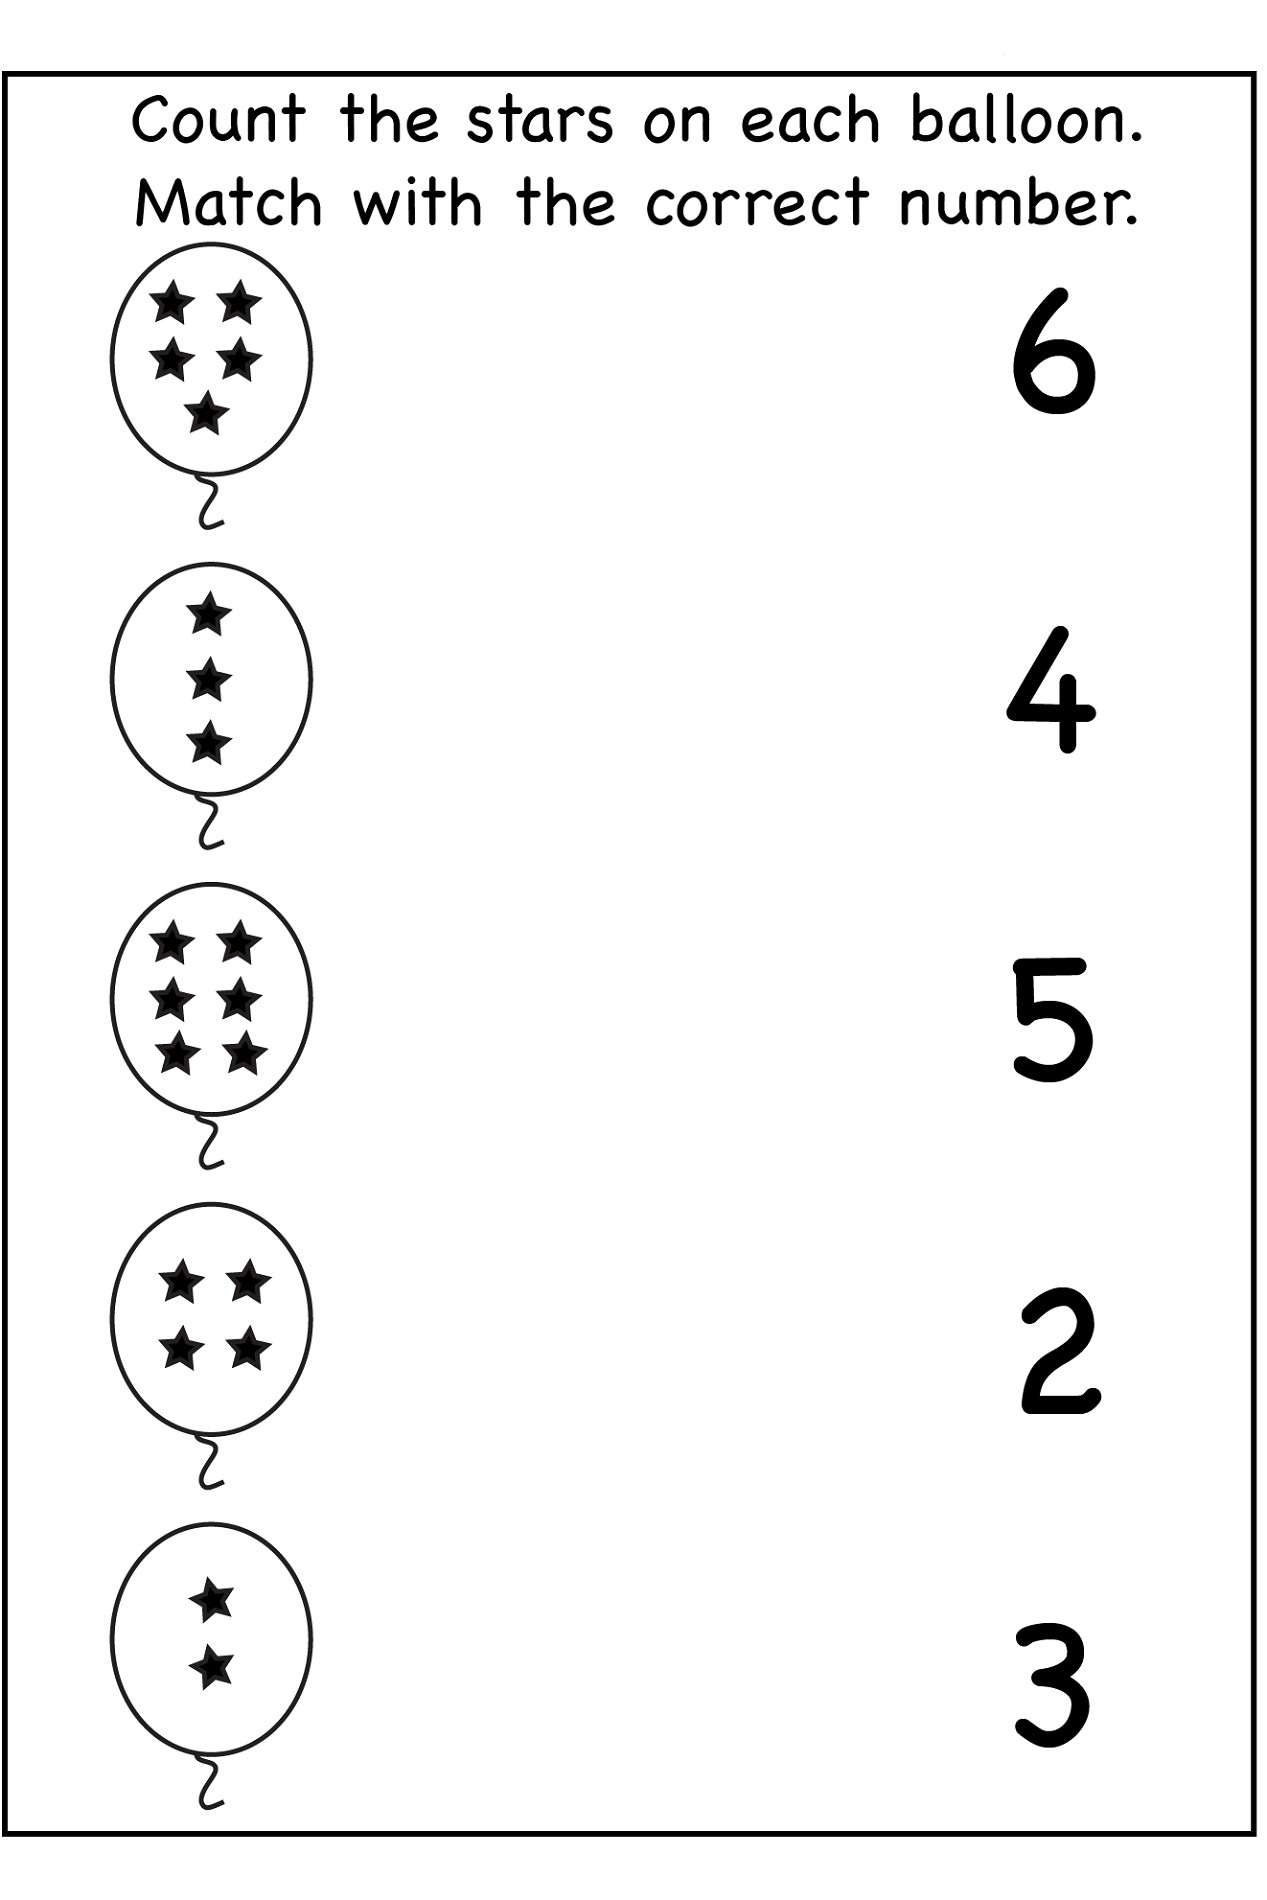 Kindergarten Number Recognition Worksheets